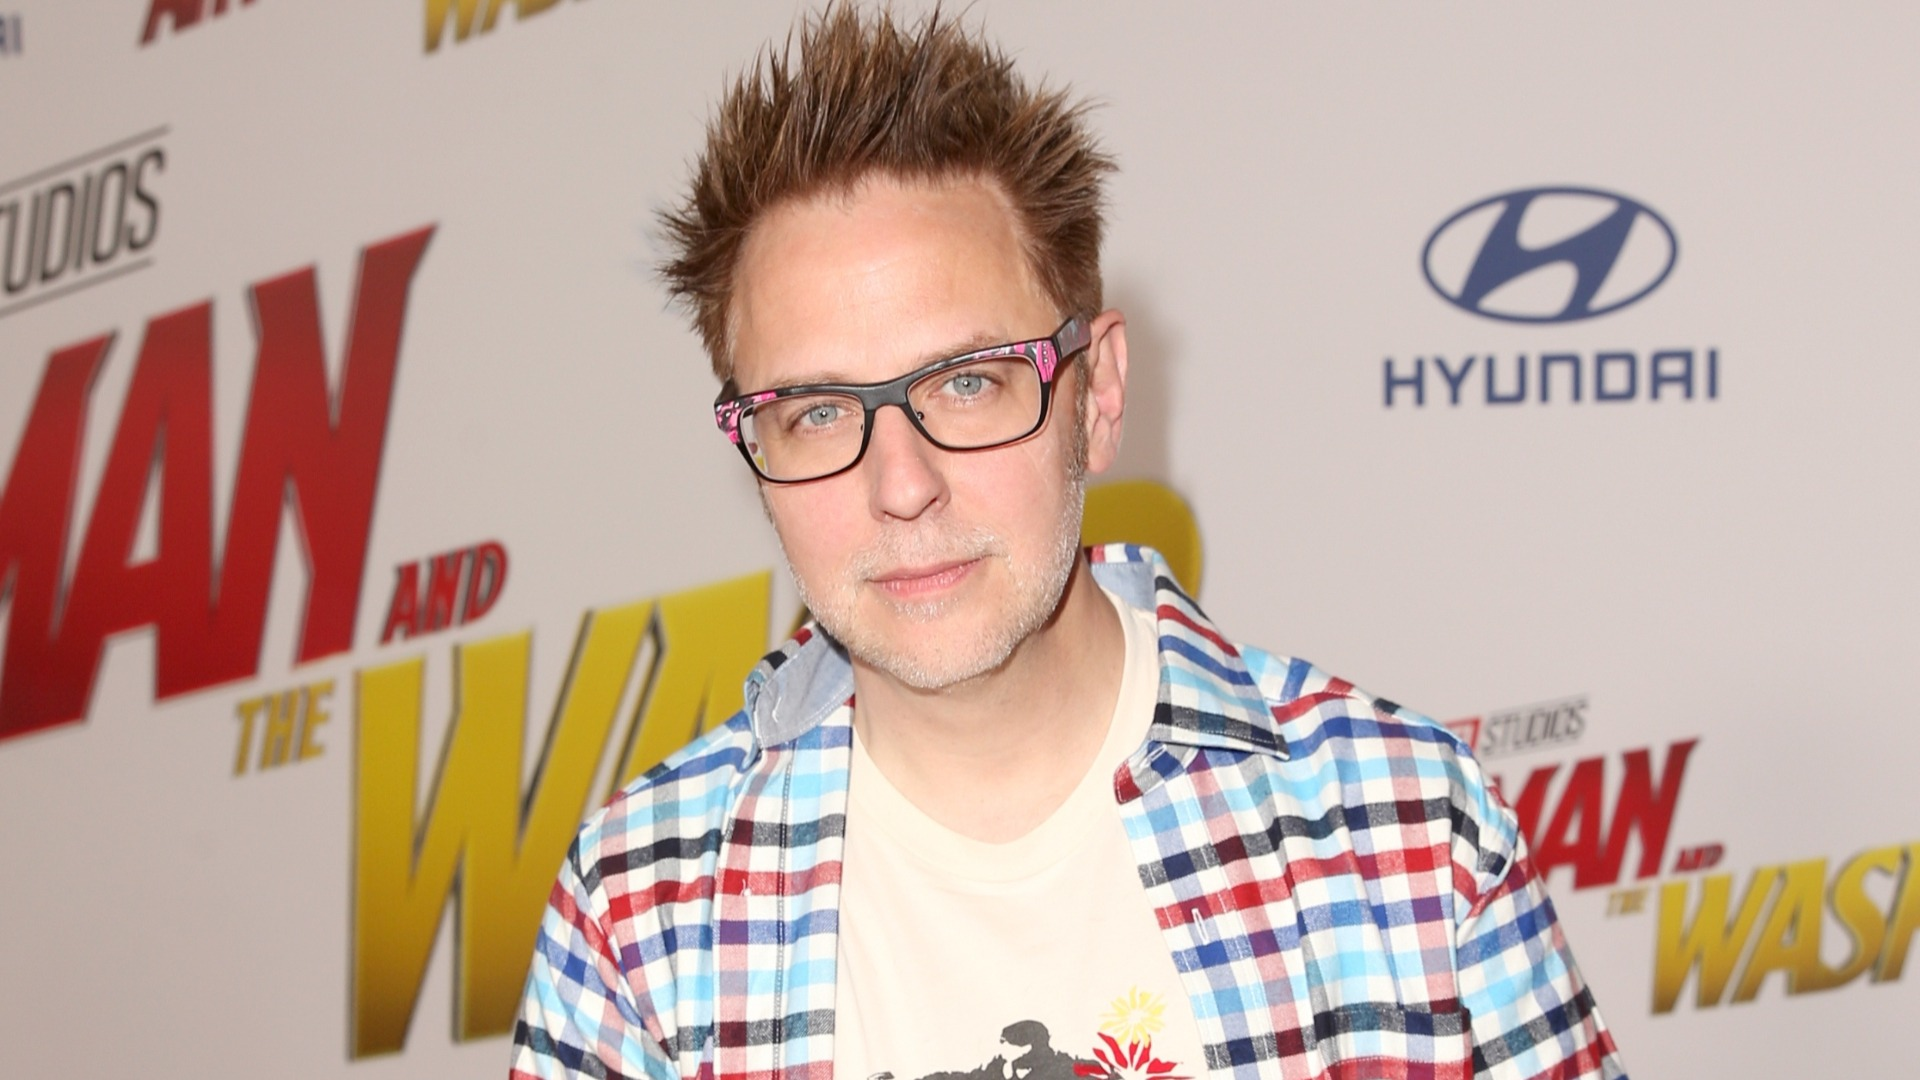 James Gunn Says There Are No Plans to Delay 'Guardians 3' or 'The Suicide Squad' Over COVID-19